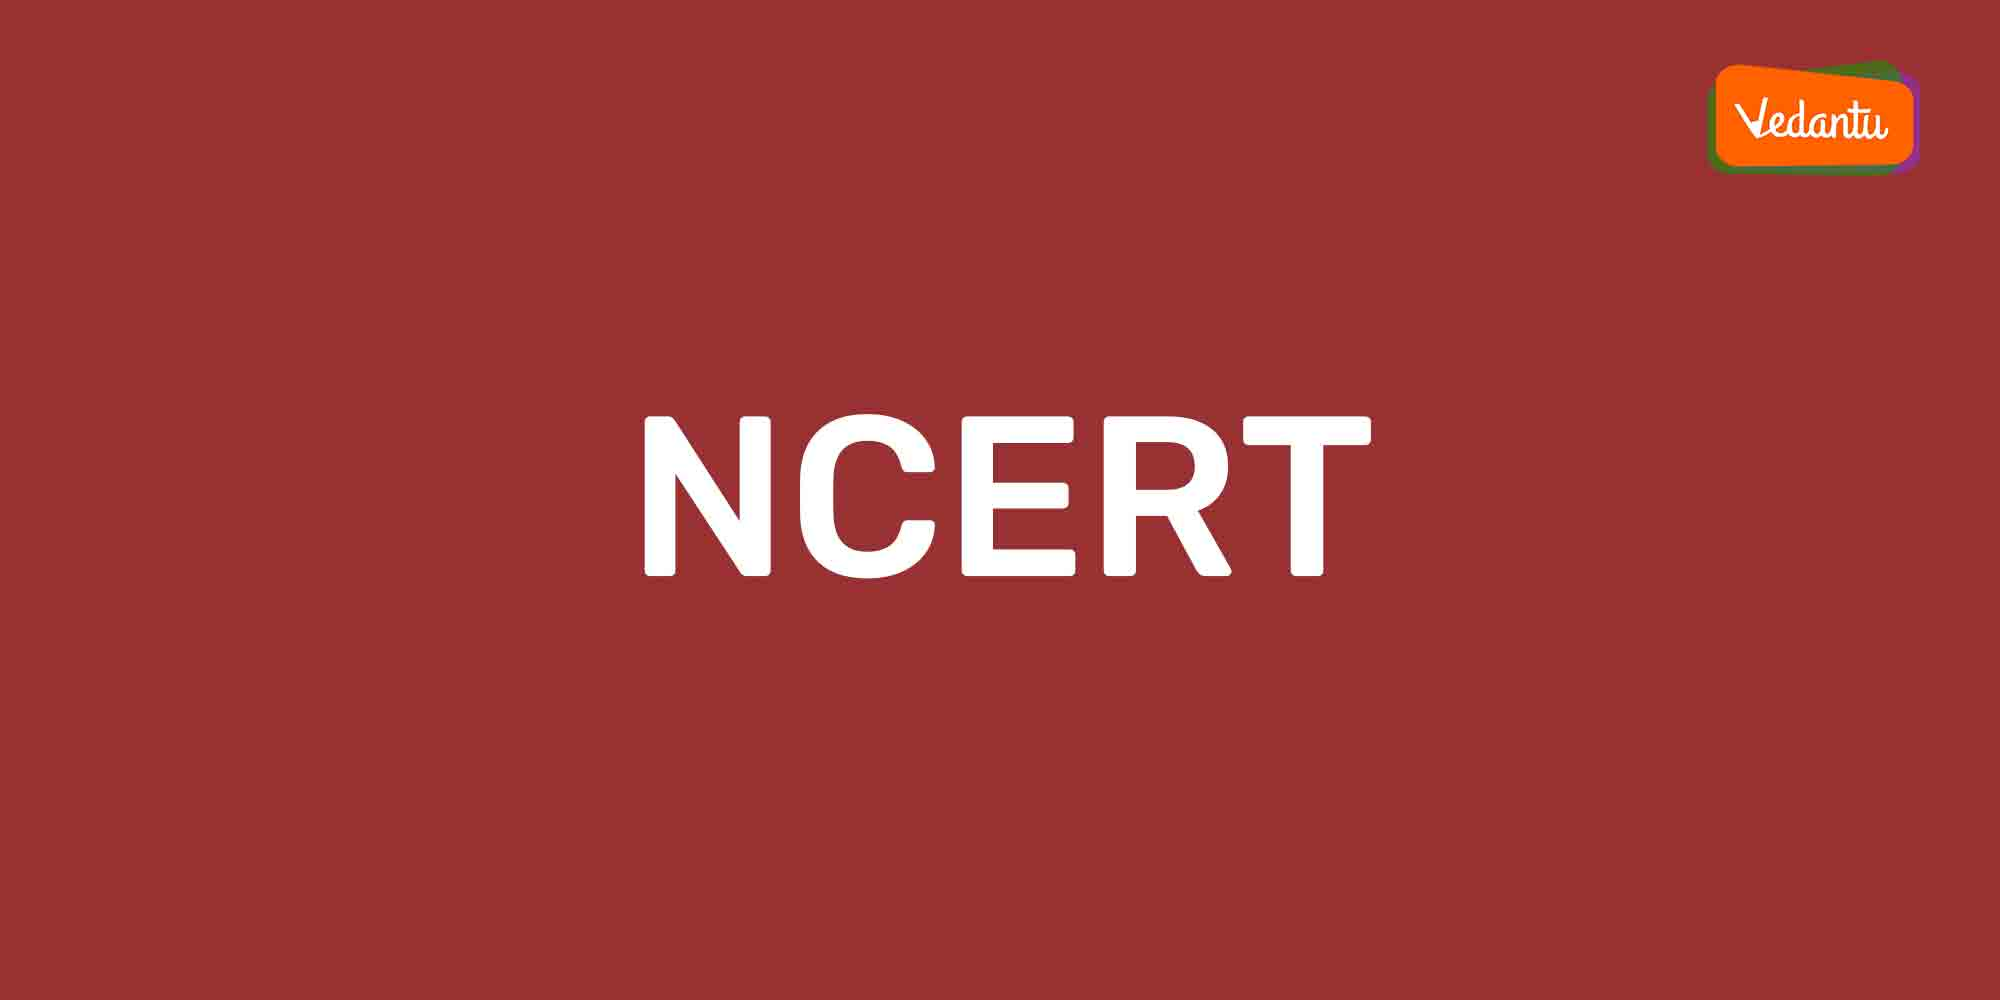 Steps to Download the Latest NCERT Books 2020